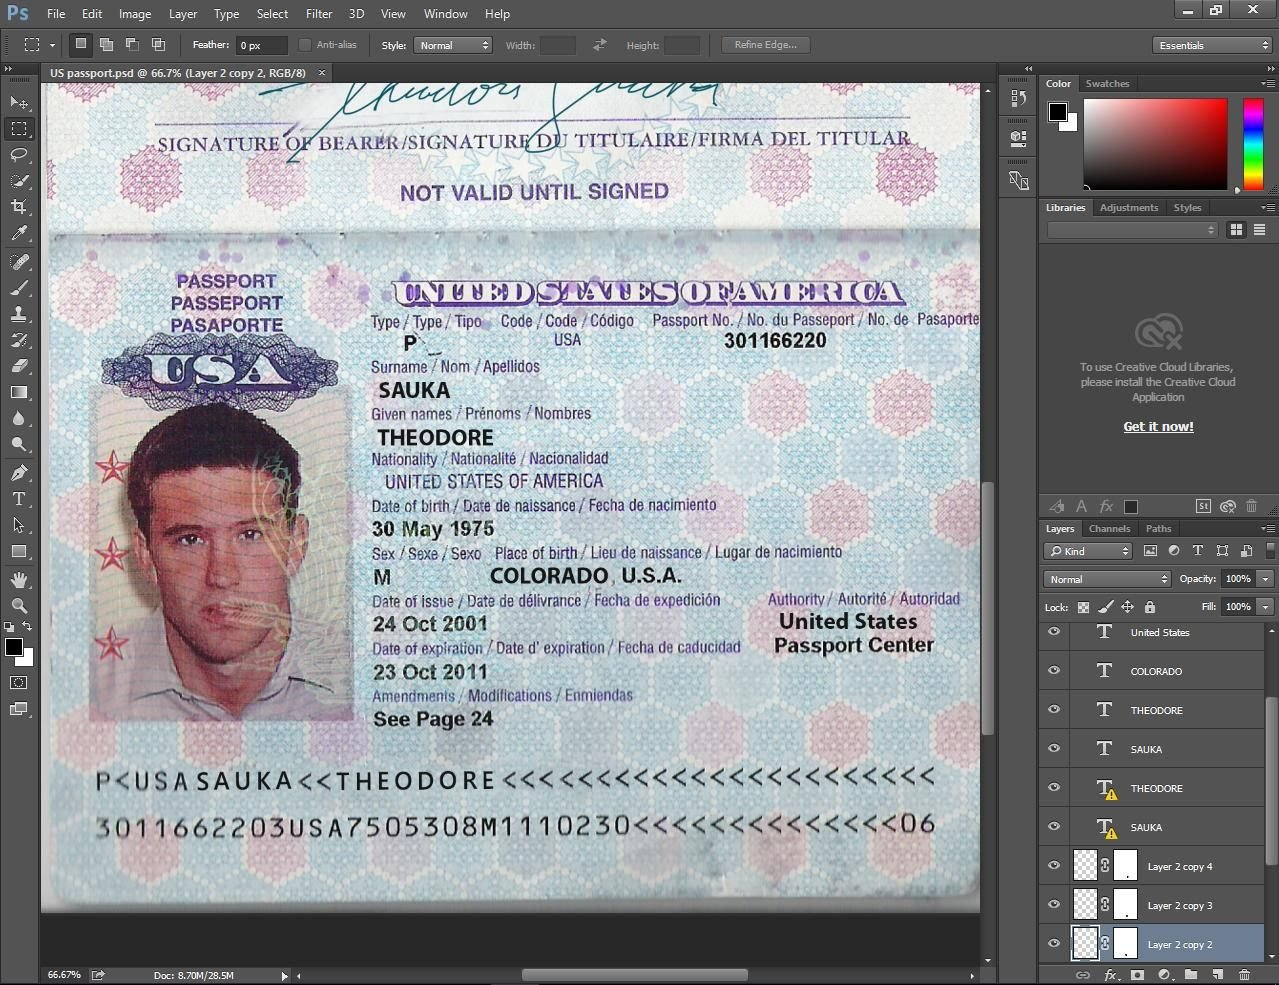 Passport Photo Template Psd Usa Passport Psd Template Passport Pinterest